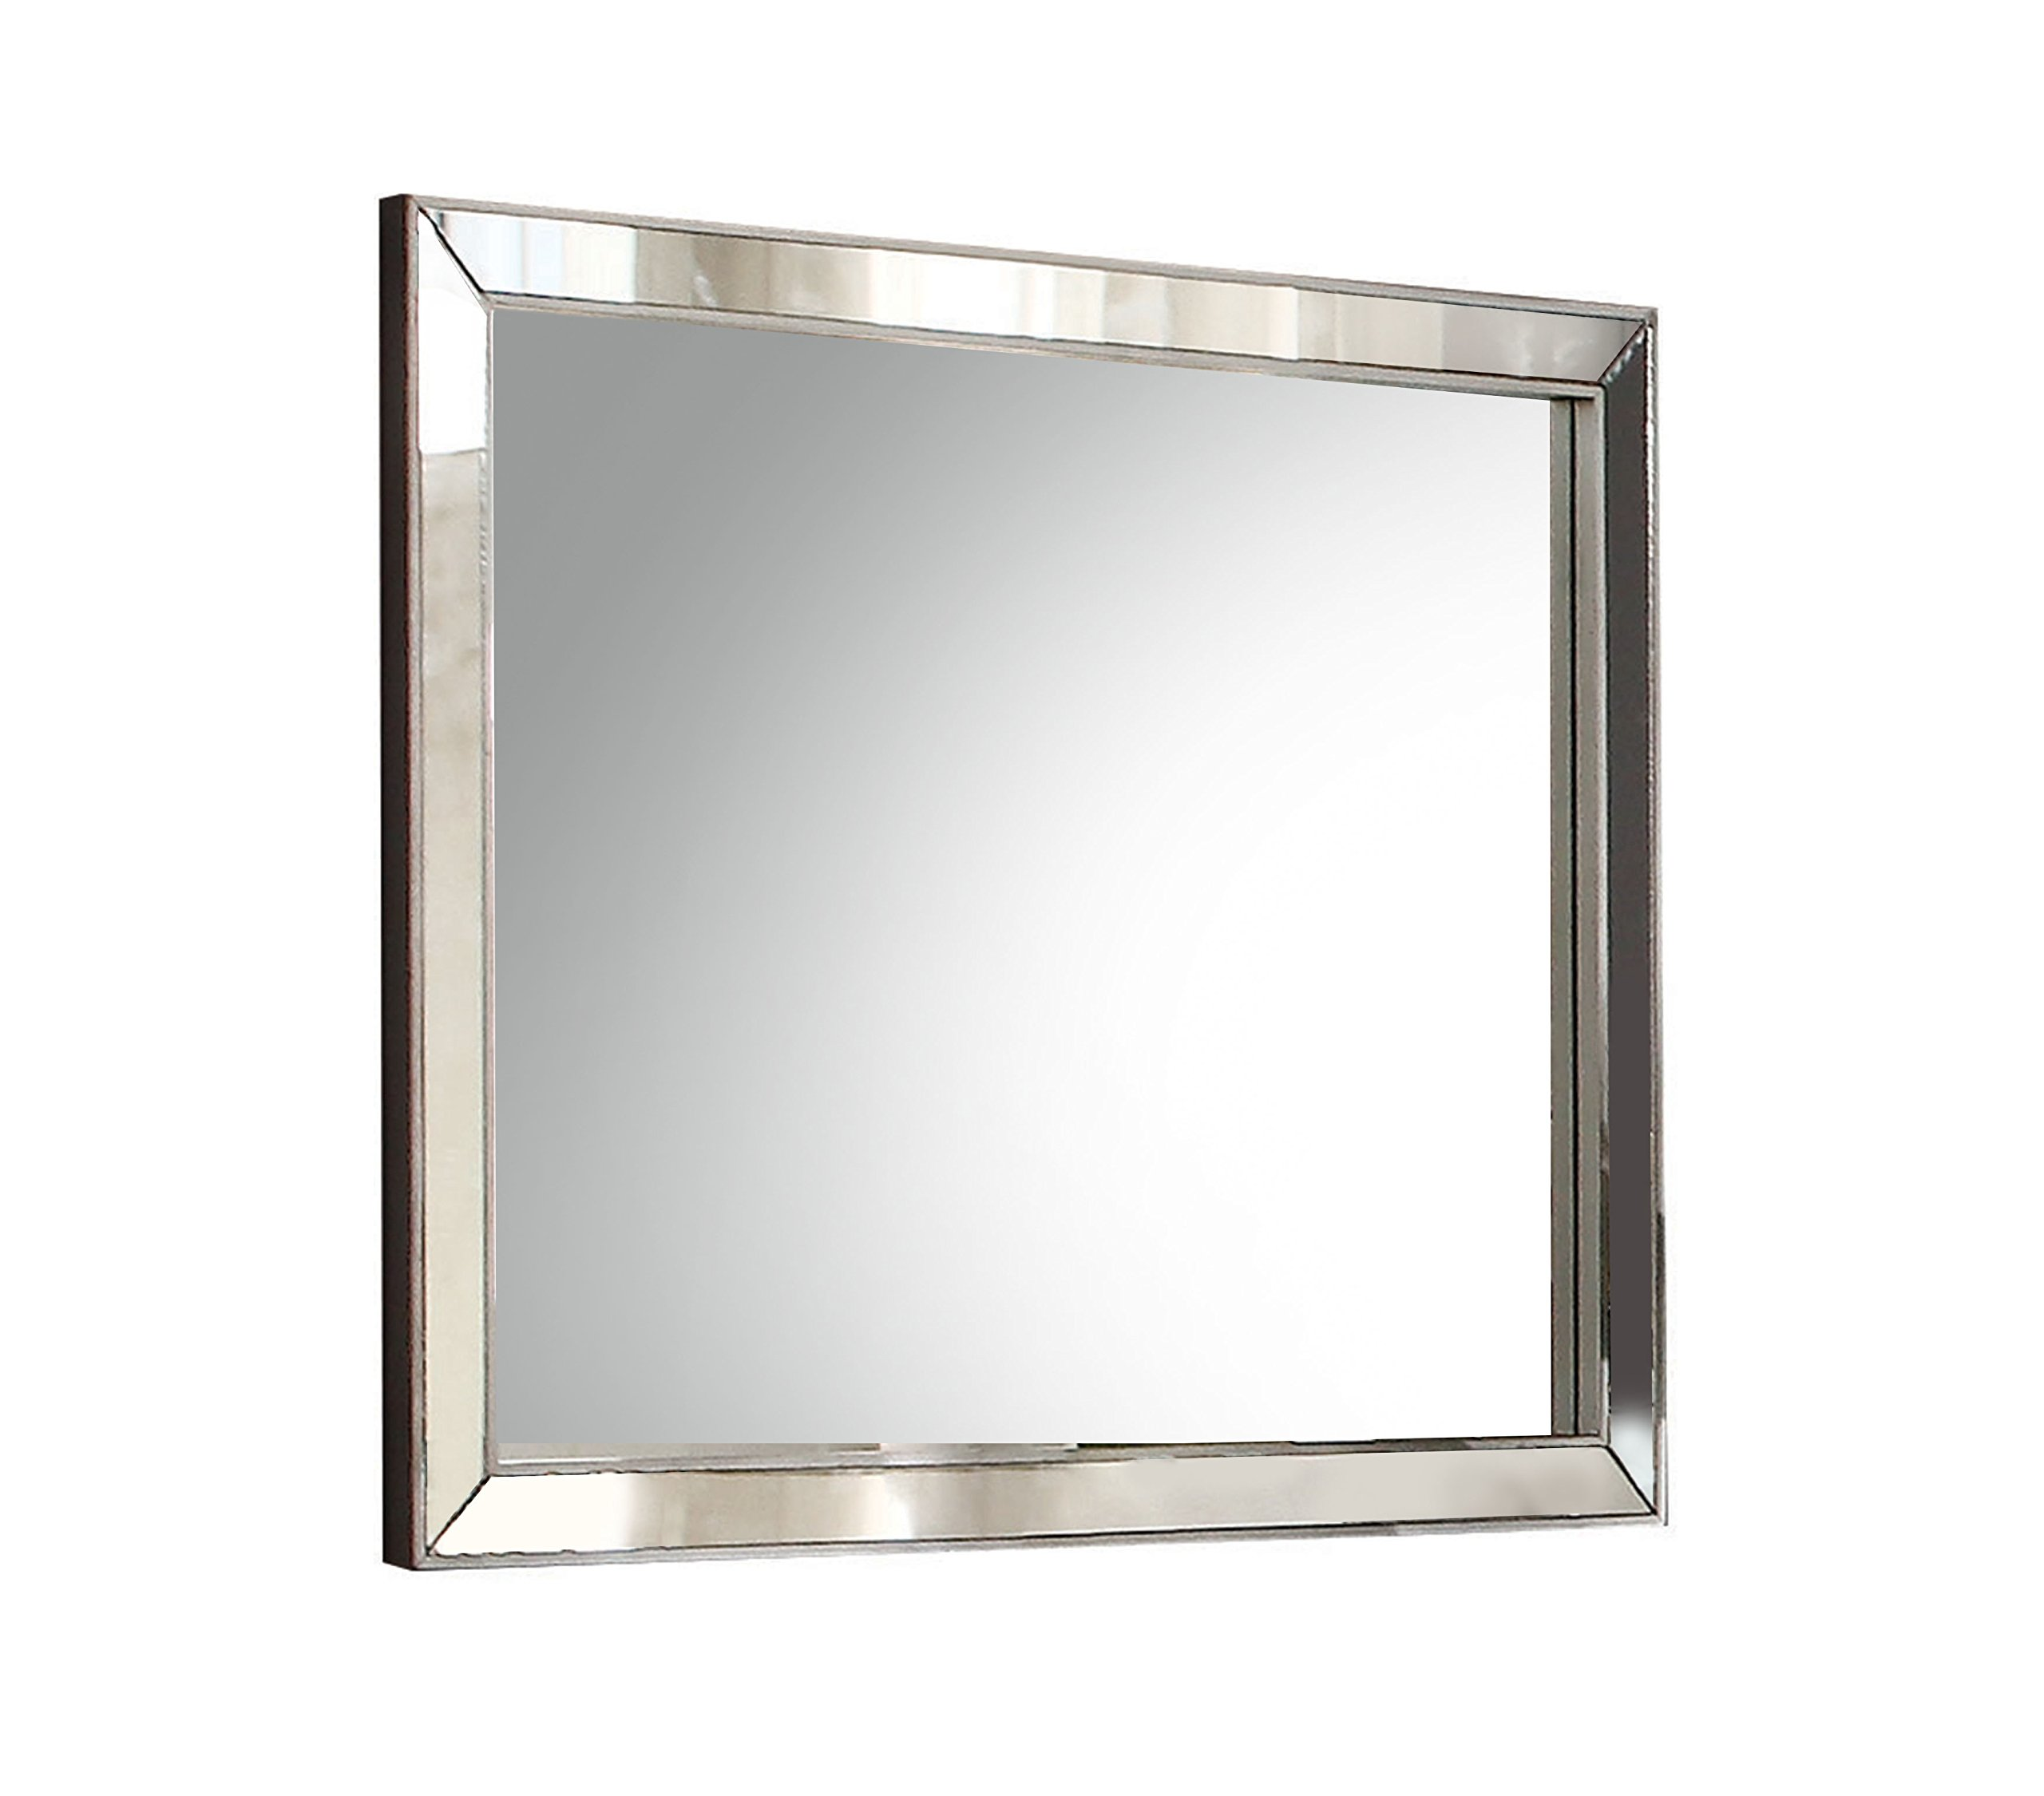 Acme Furniture 24844 Voeville II Mirror, Platinum by Acme Furniture